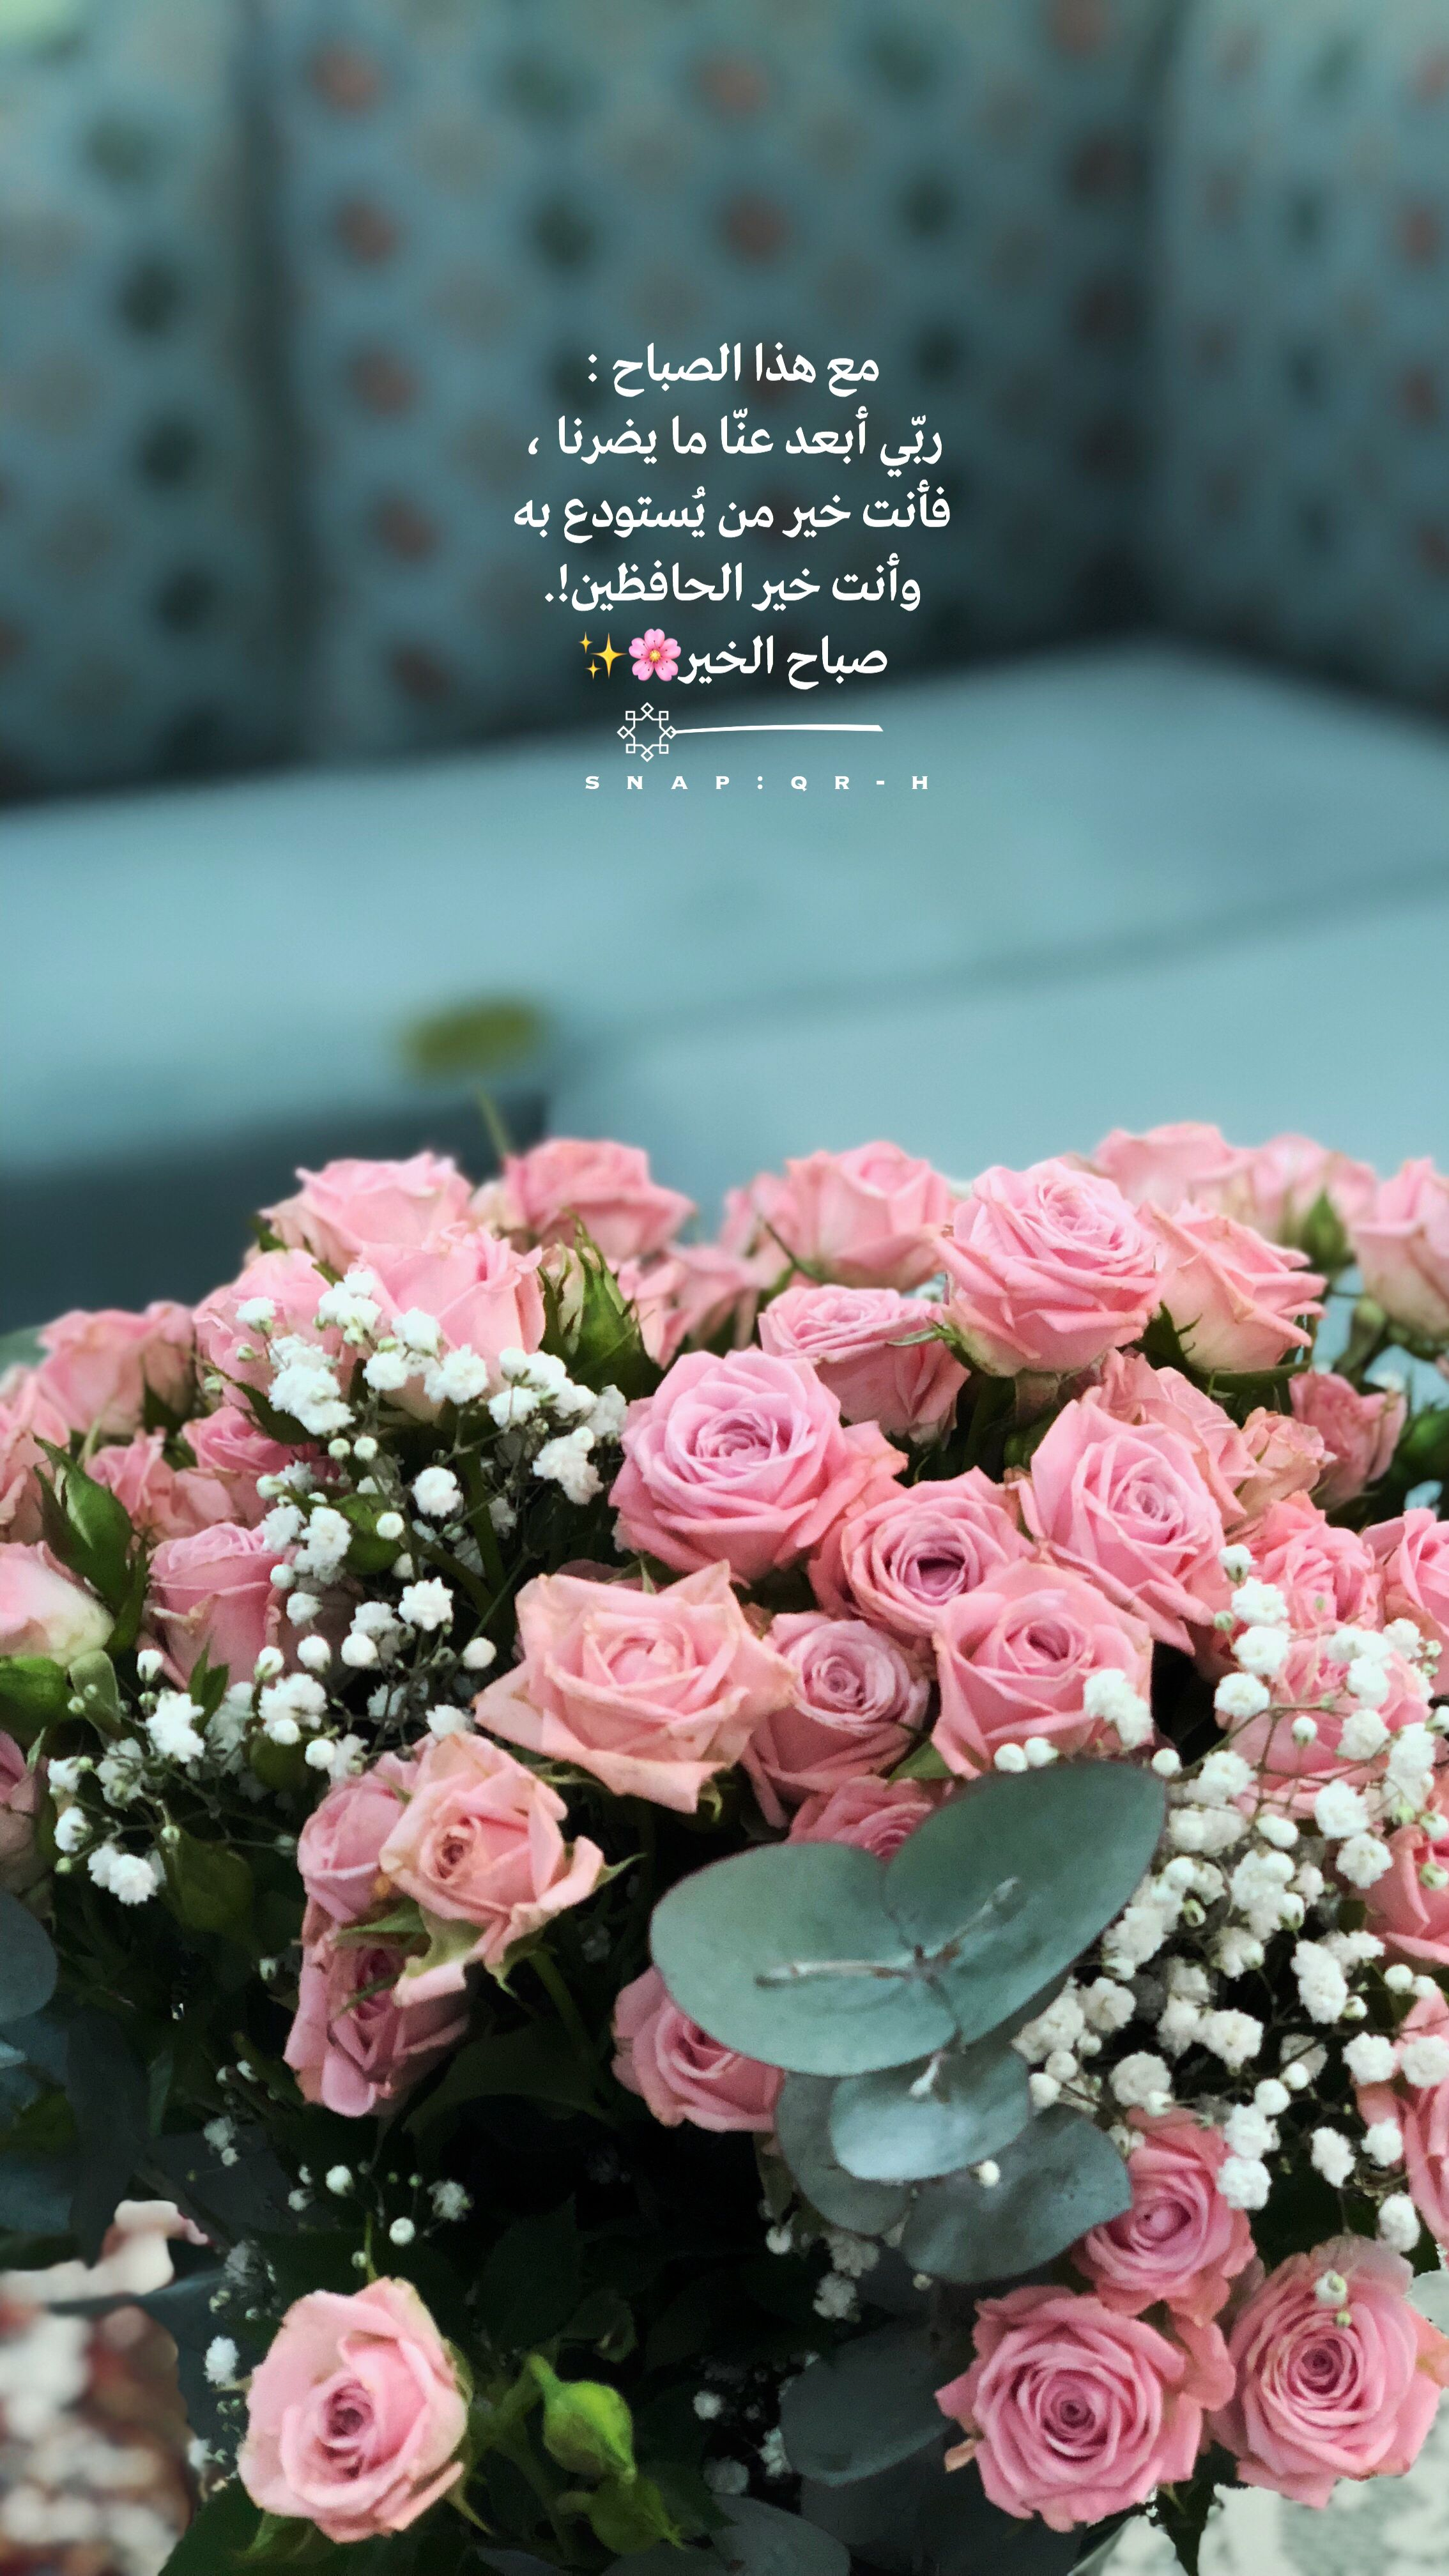 Pin By Ahmed Abdel Latif On يومياتي Beautiful Morning Messages Good Morning Flowers Good Morning Arabic